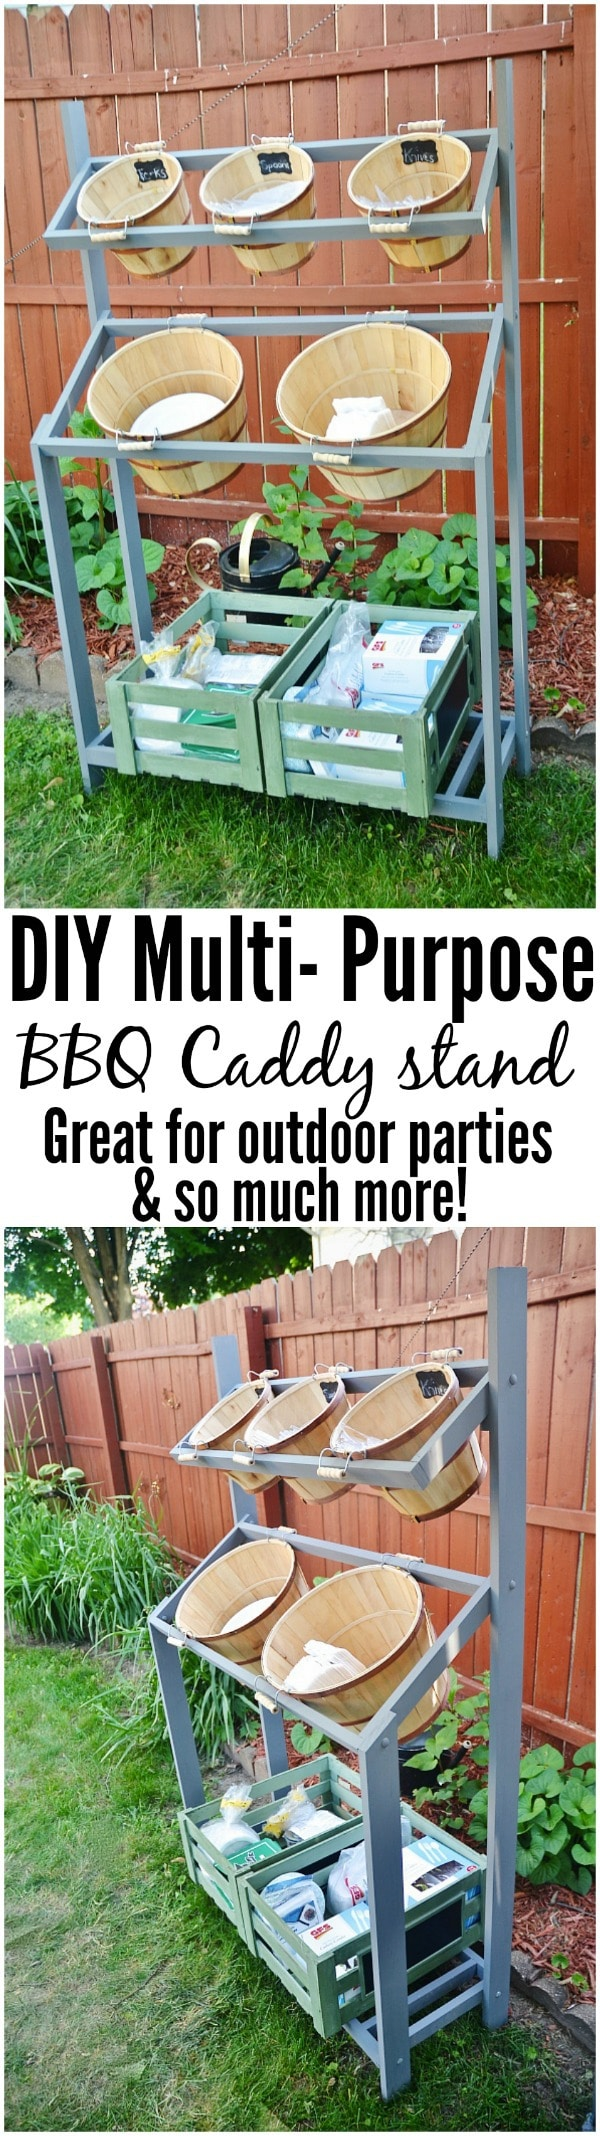 DIY BBQ Caddy Stand - Seriously the BEST thing to make for any backyard parties. A great spot for all your forks, knives, spoons, napkins, paper plates, drinks, & extra storage for reloading through out the party. Great for graduation parties, weddings, backyard bbq's, & so much more! Would also be great for a farm stand, flowers, plant stand, outdoor bar, & so much more! easy to build with step by step instructions!